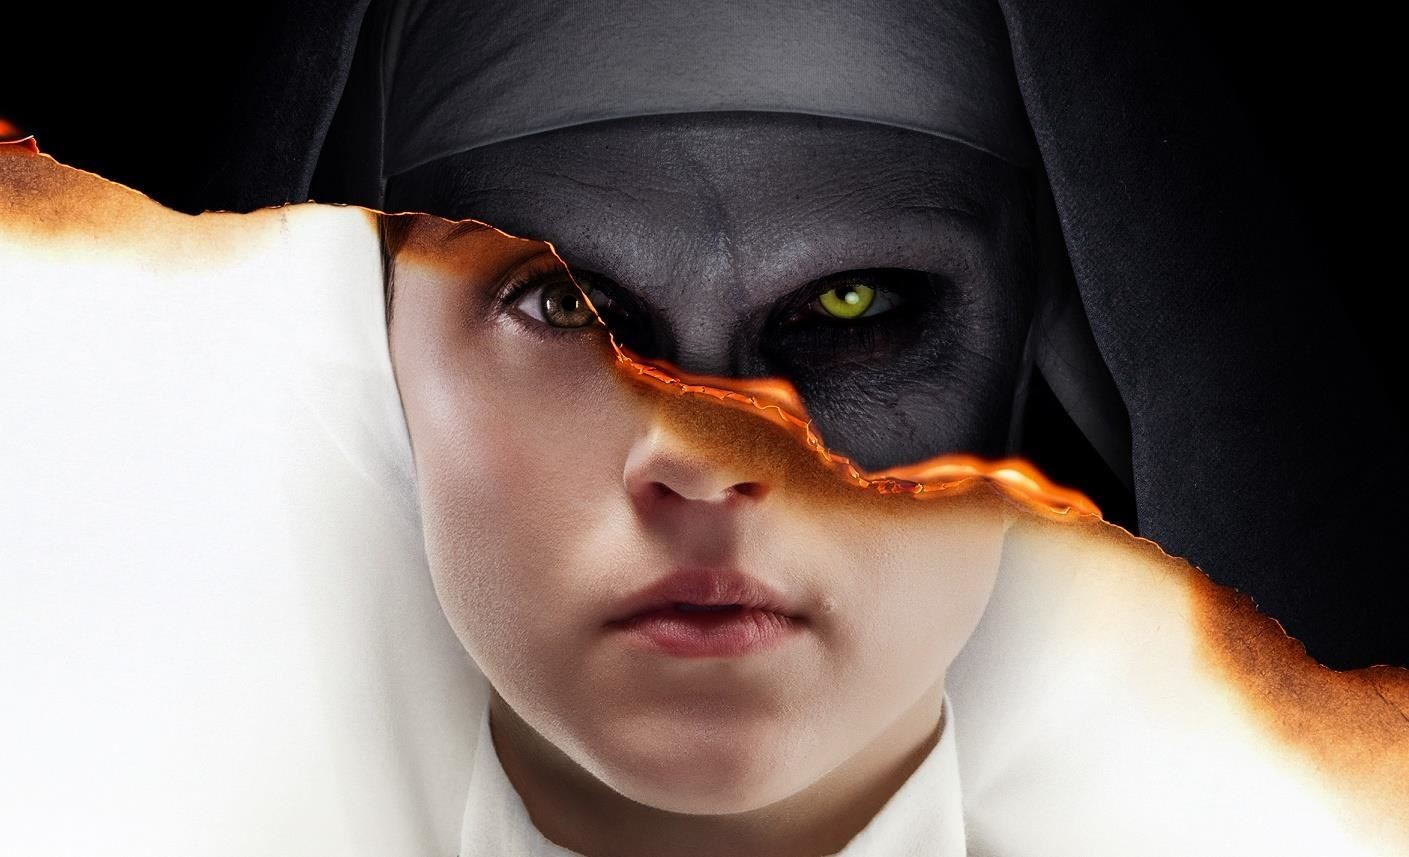 The Nun Full Movie Hollywood Watch and Download HDr